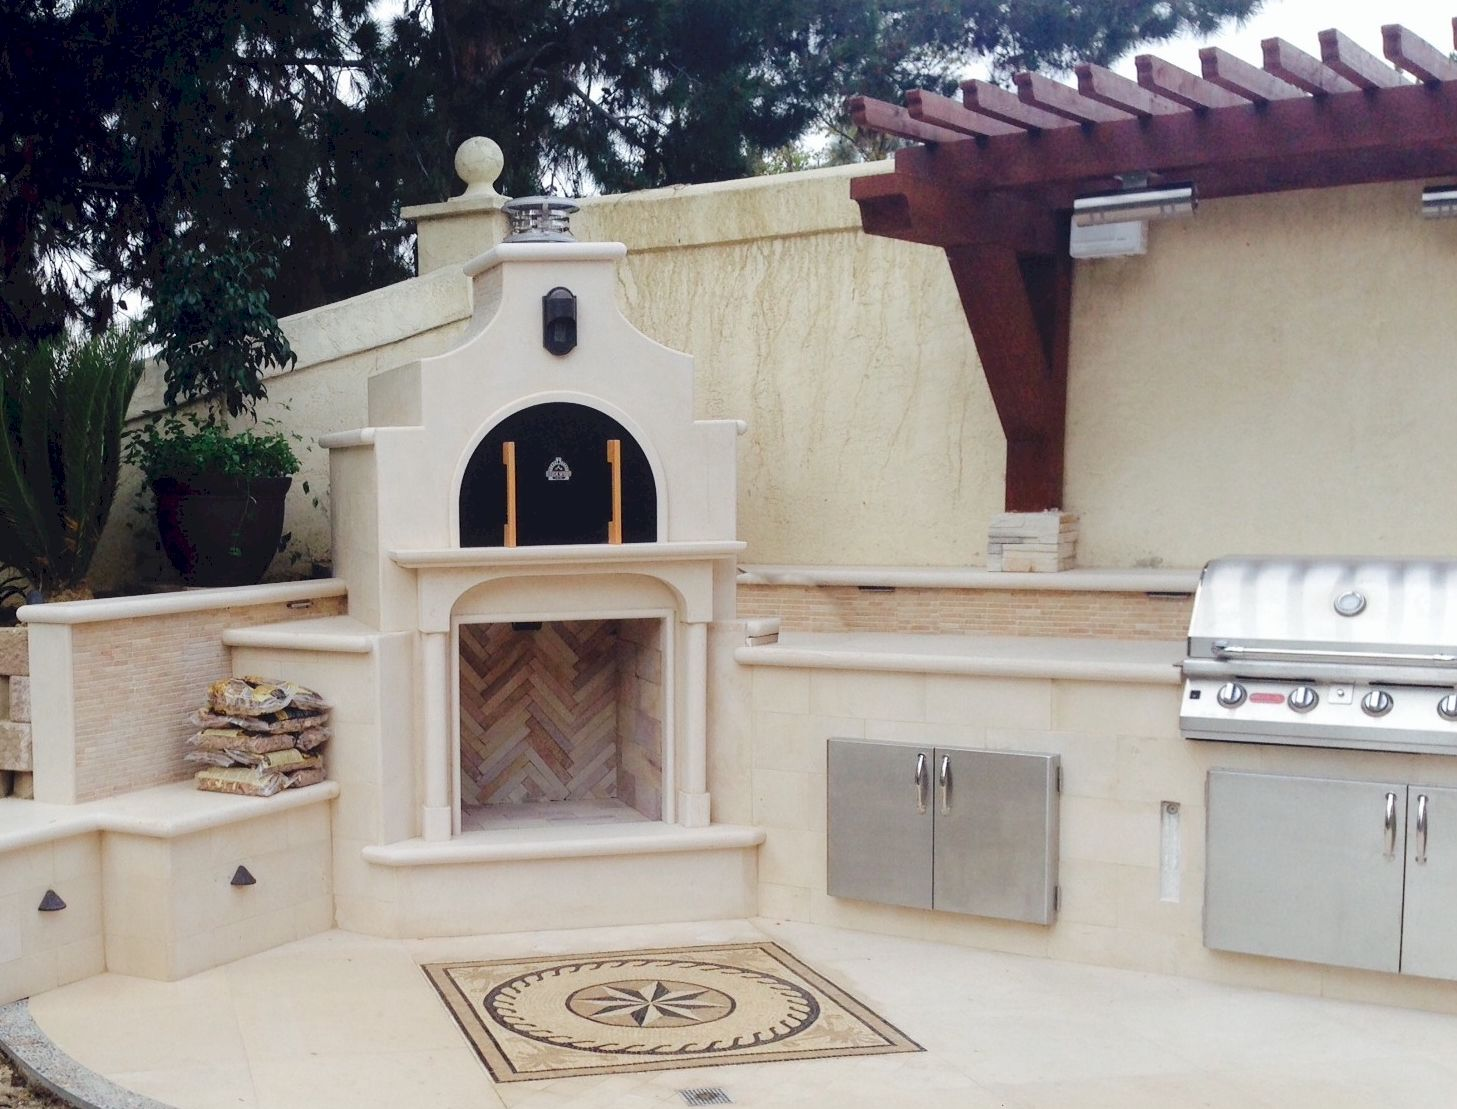 A Beautifully Finished Wood Fired Brick Pizza Oven And Gas Bbq Grill In An Outdoor Kitchen Brickwoodovens Pizza Oven Pizza Oven Outdoor Outdoor Kitchen Design